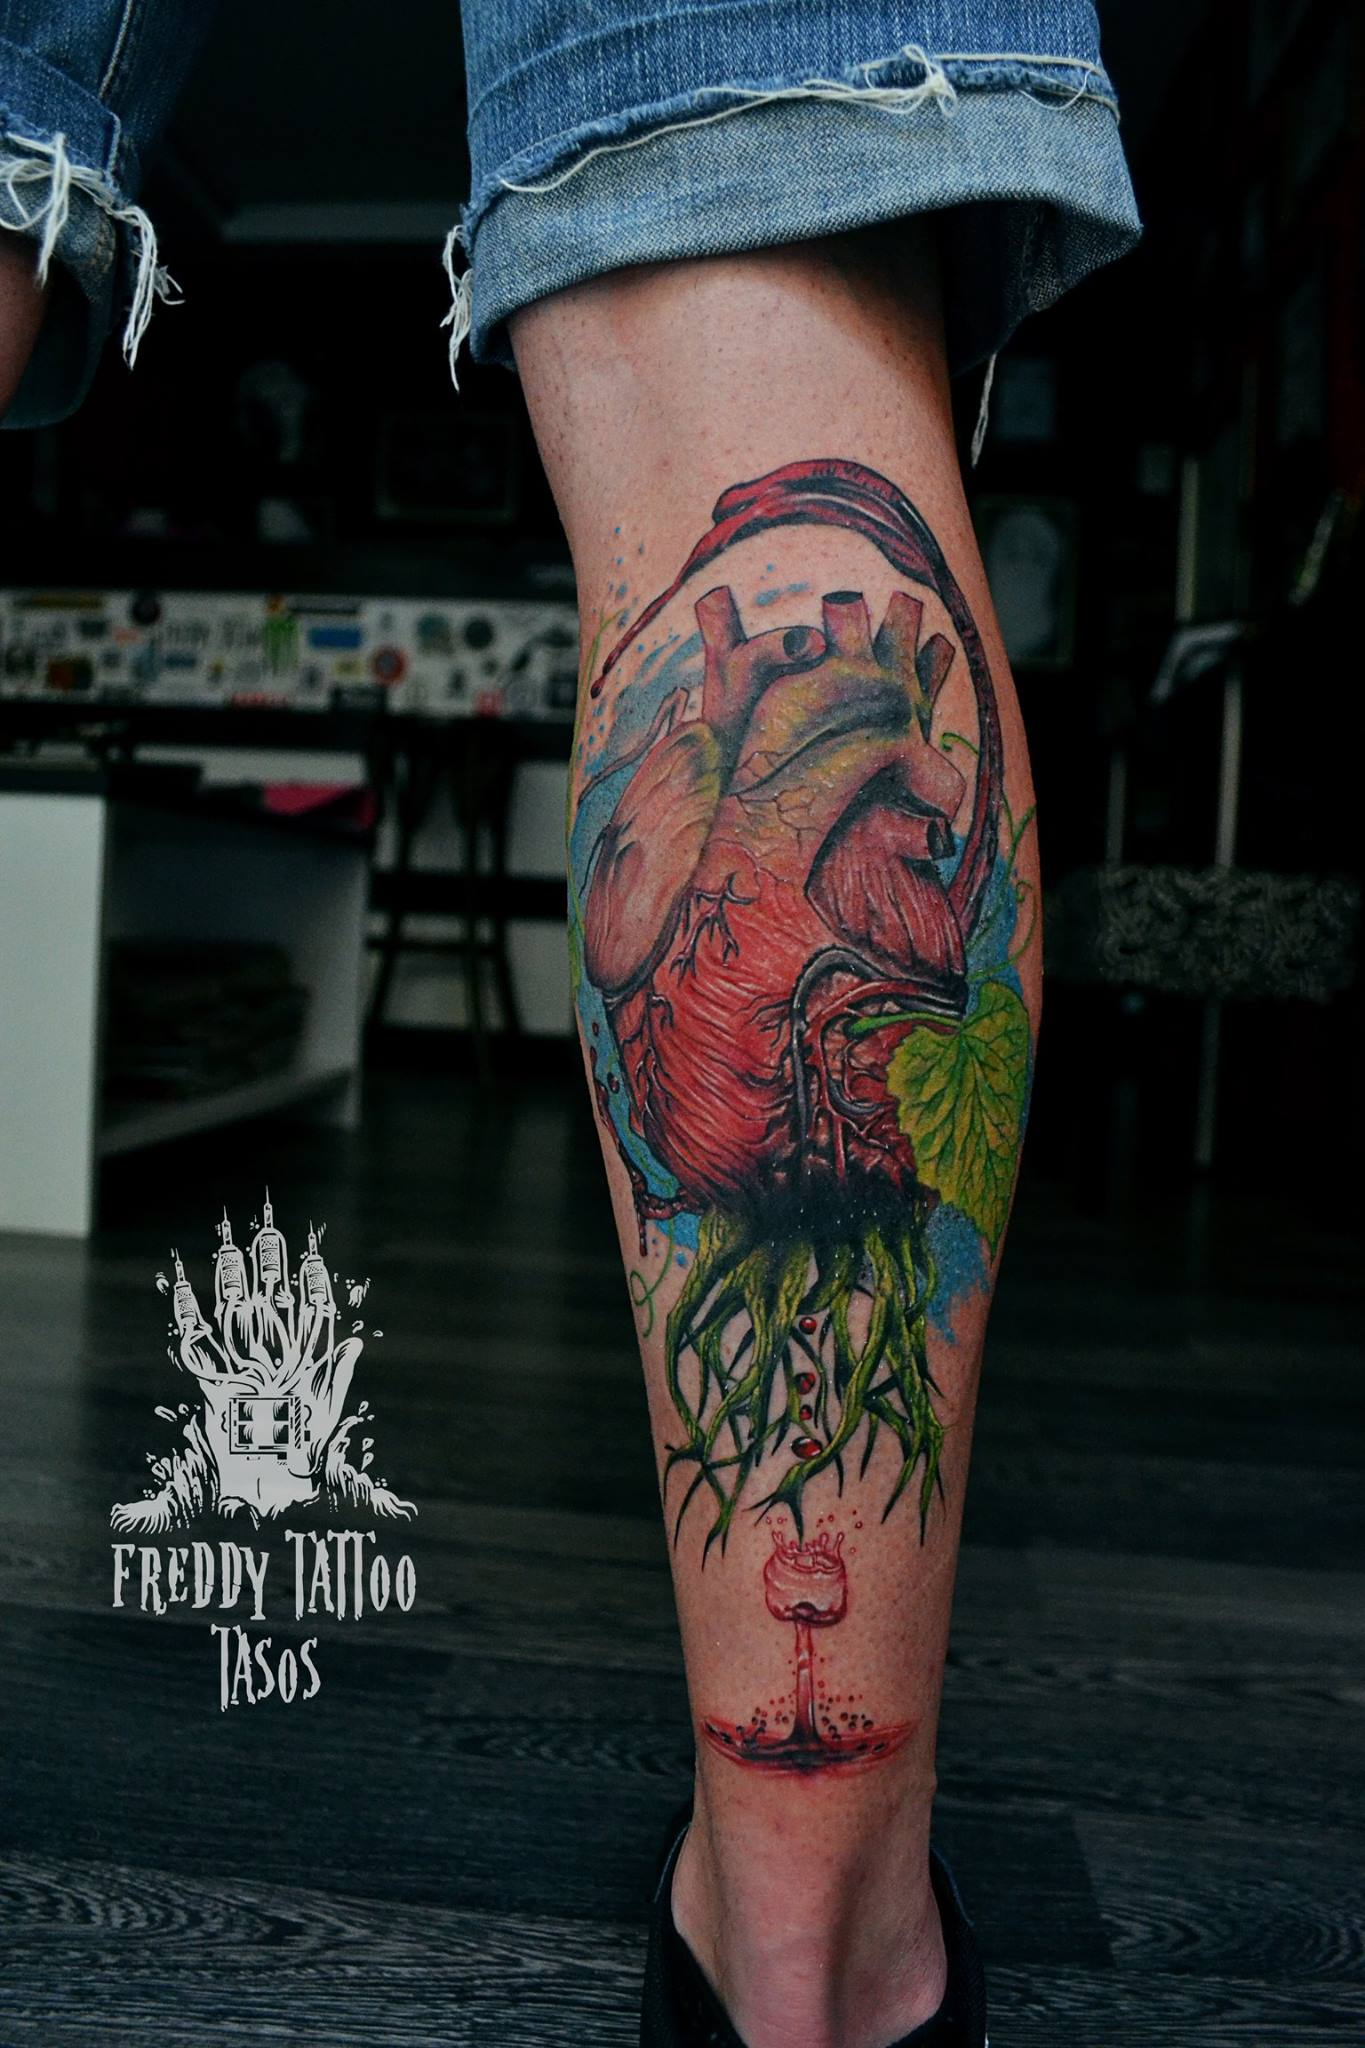 Tasos Freddy Tattoo Studio – Tattoo 2002